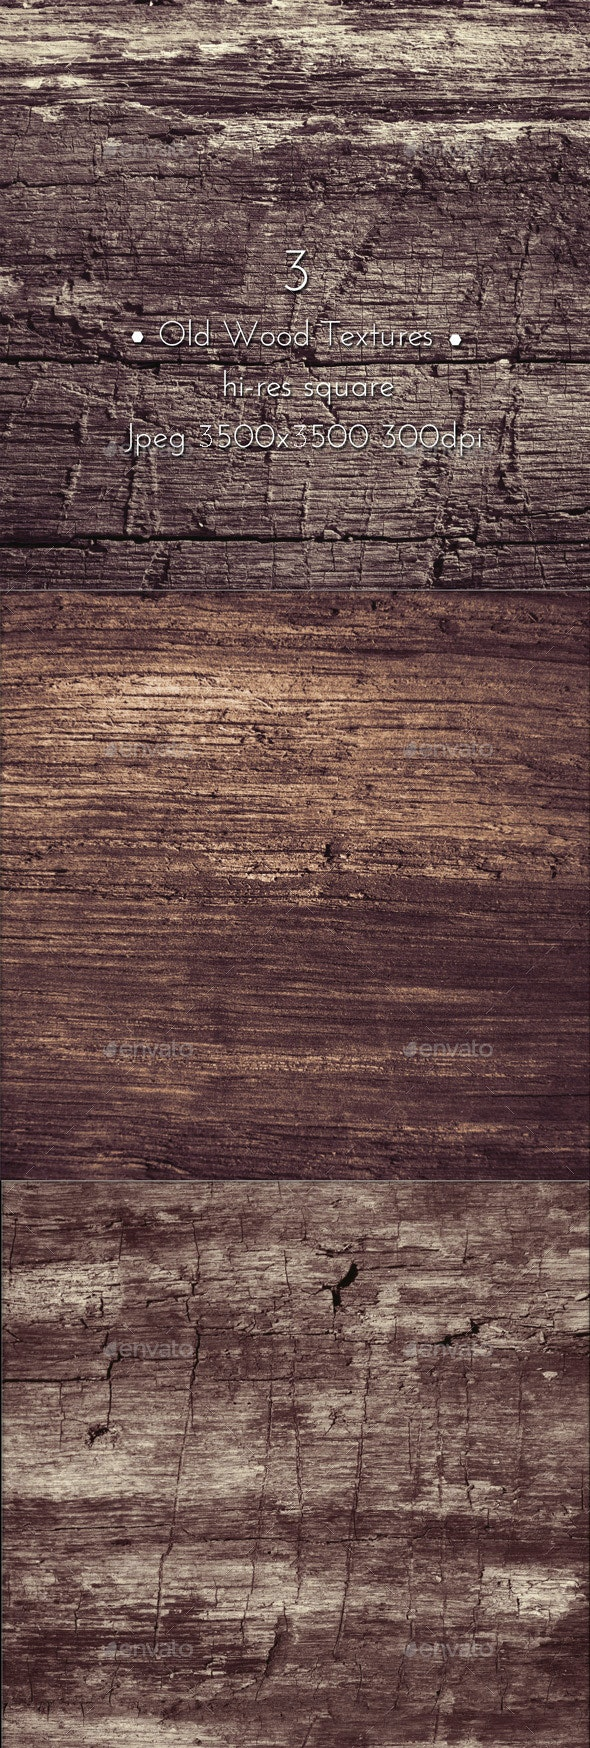 Wooden Surface Textures - Wood Textures